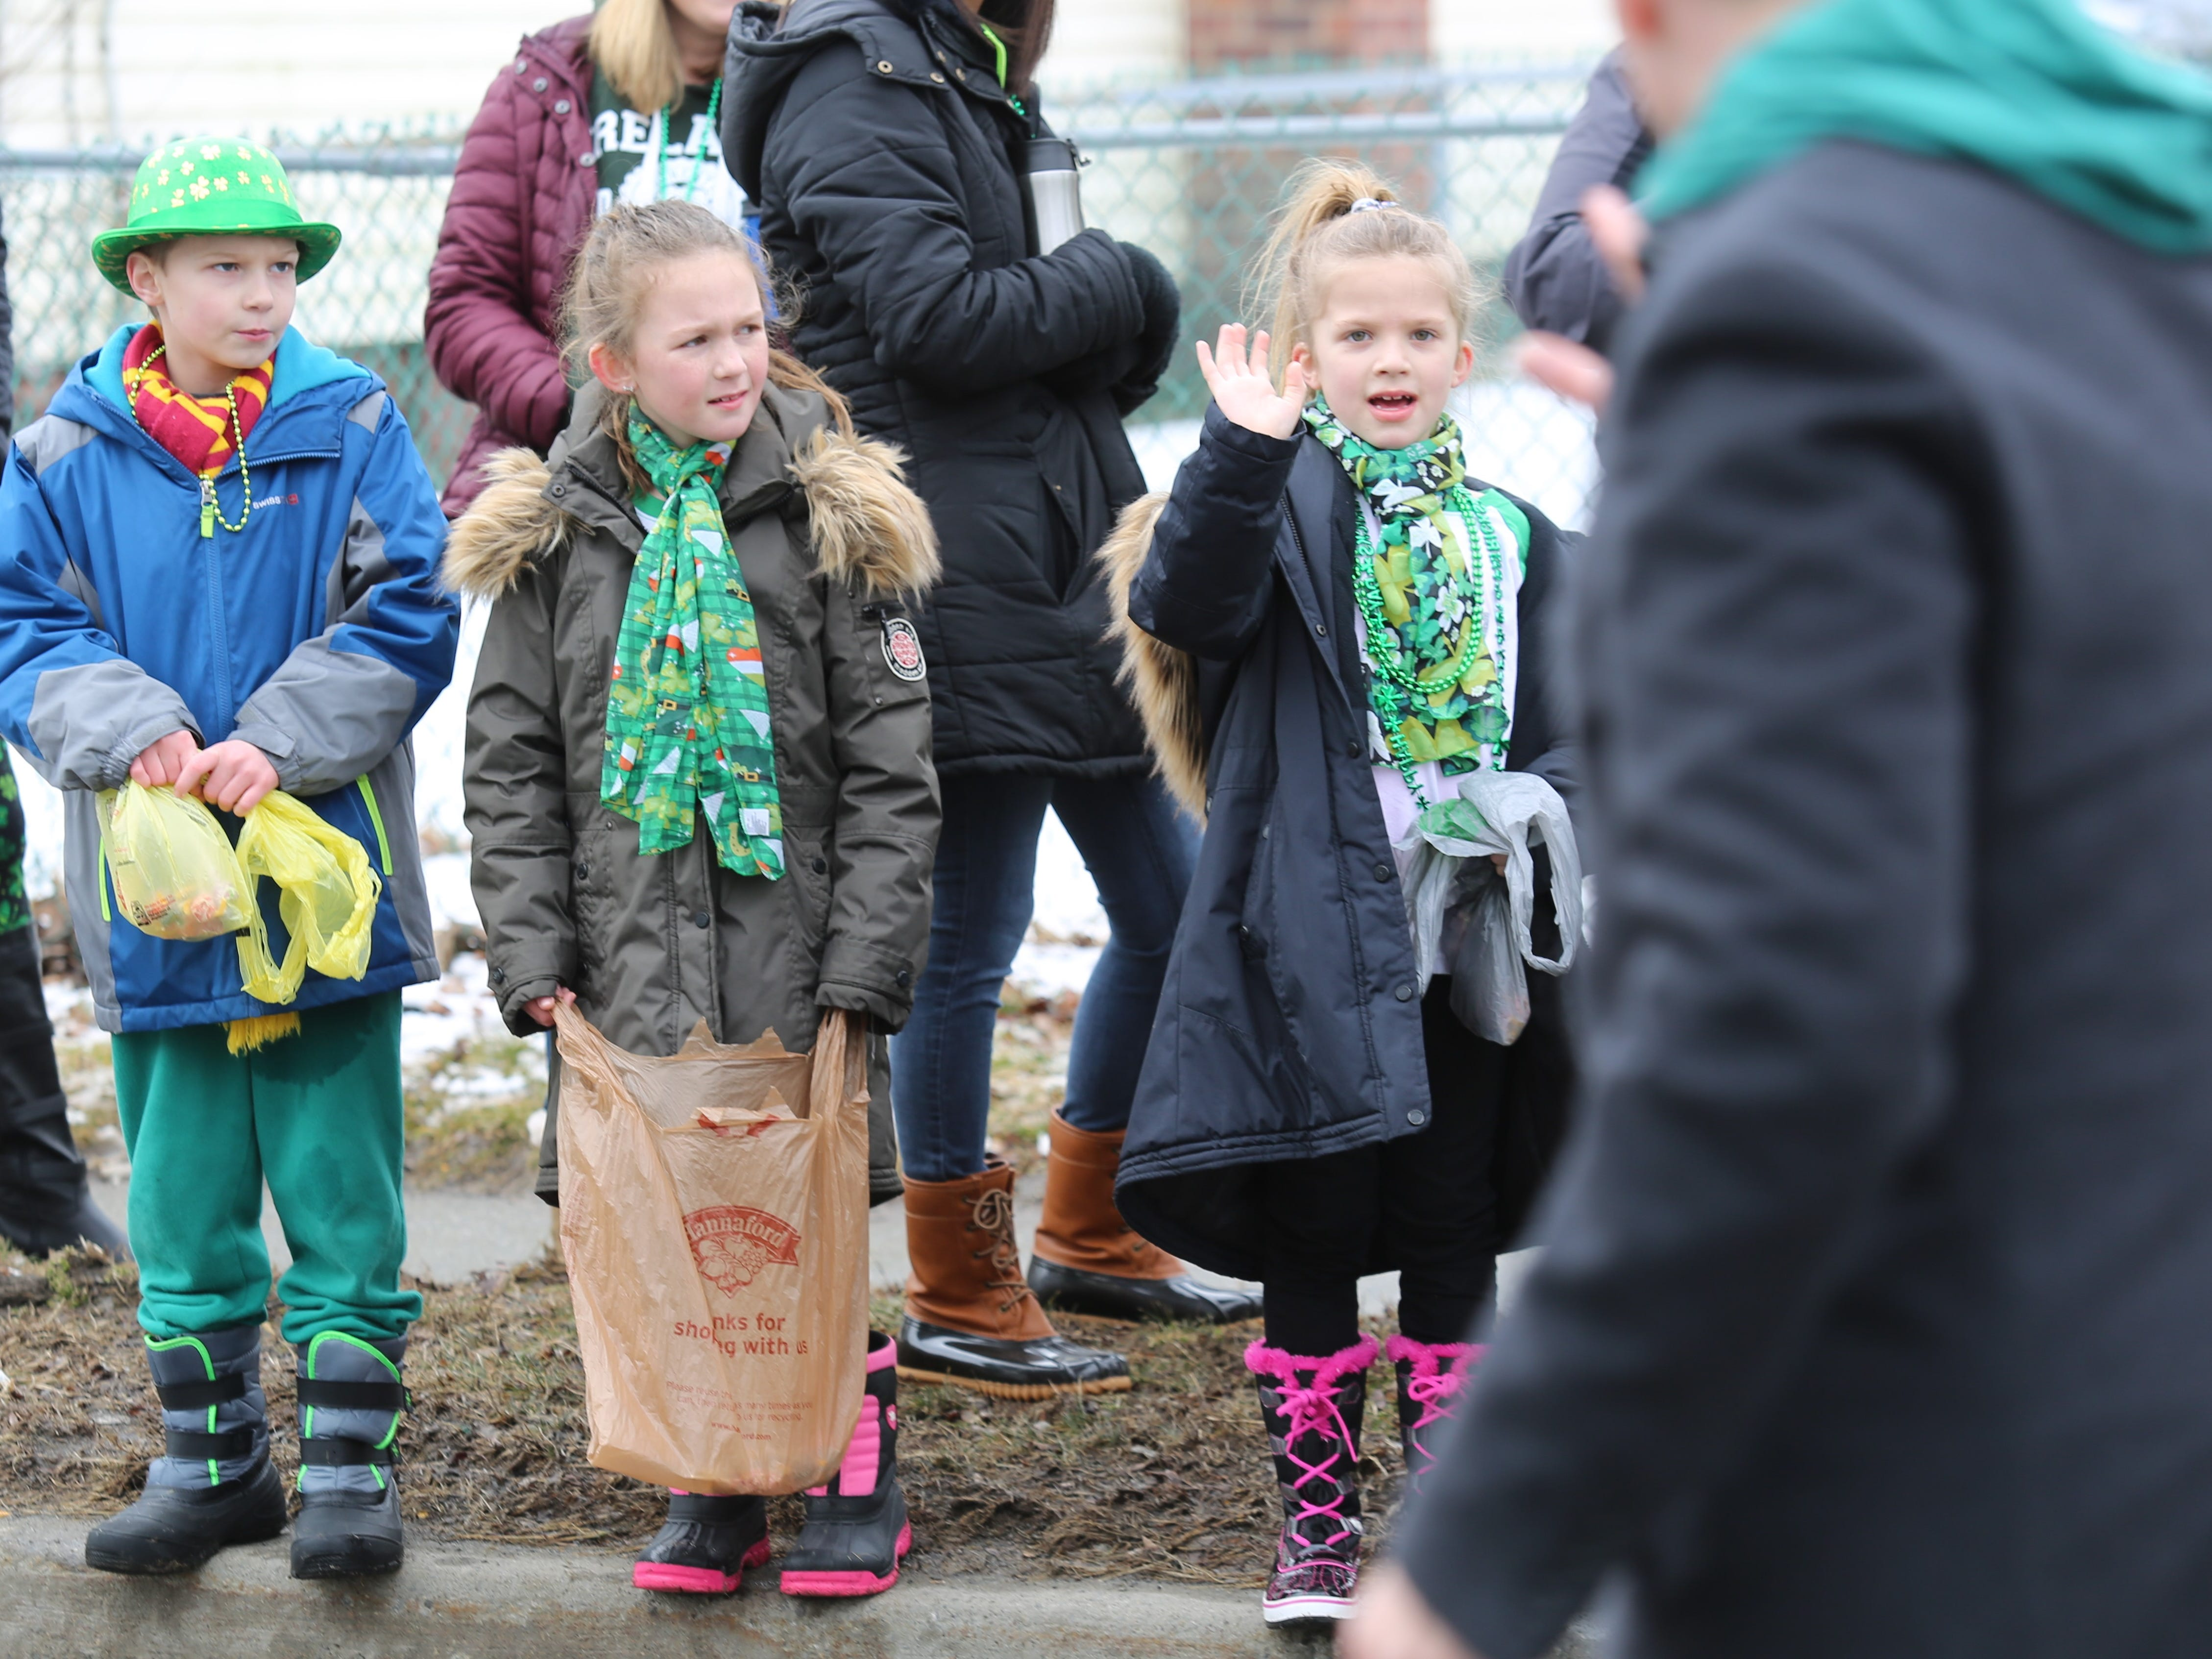 (from left to right) Derek Cogan, 8, Aubrey Cerone, 9, and Braelynn Cerone, 7, watch the Dutchess County St. Patrick's Day Parade pass by in Wappingers Falls on Saturday.